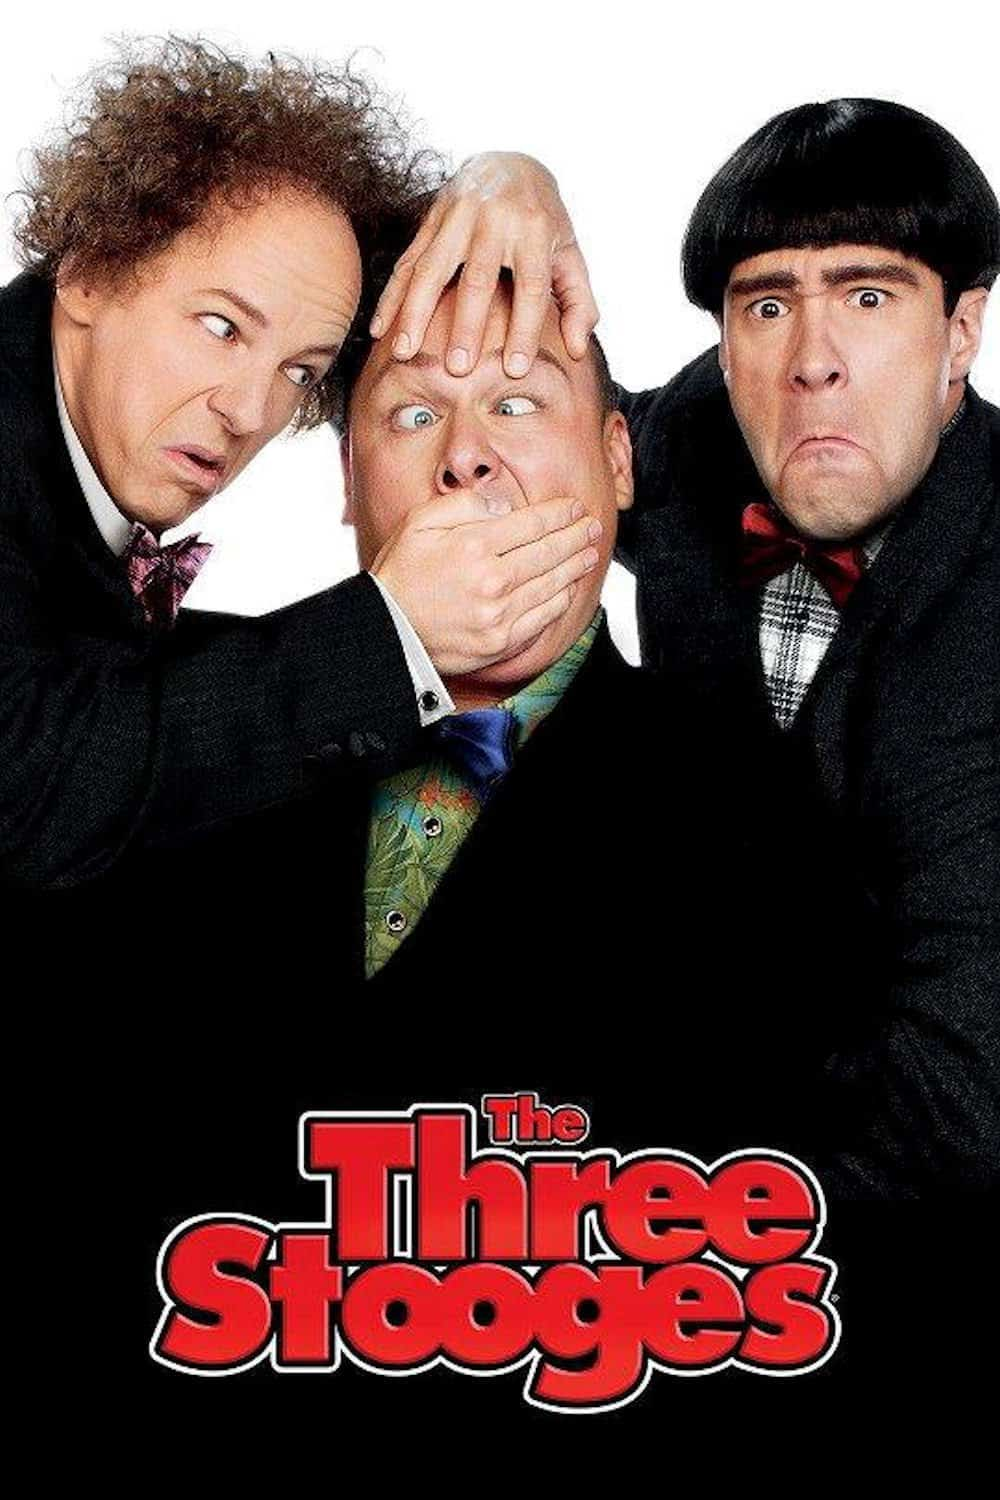 The Three Stooges, 2012